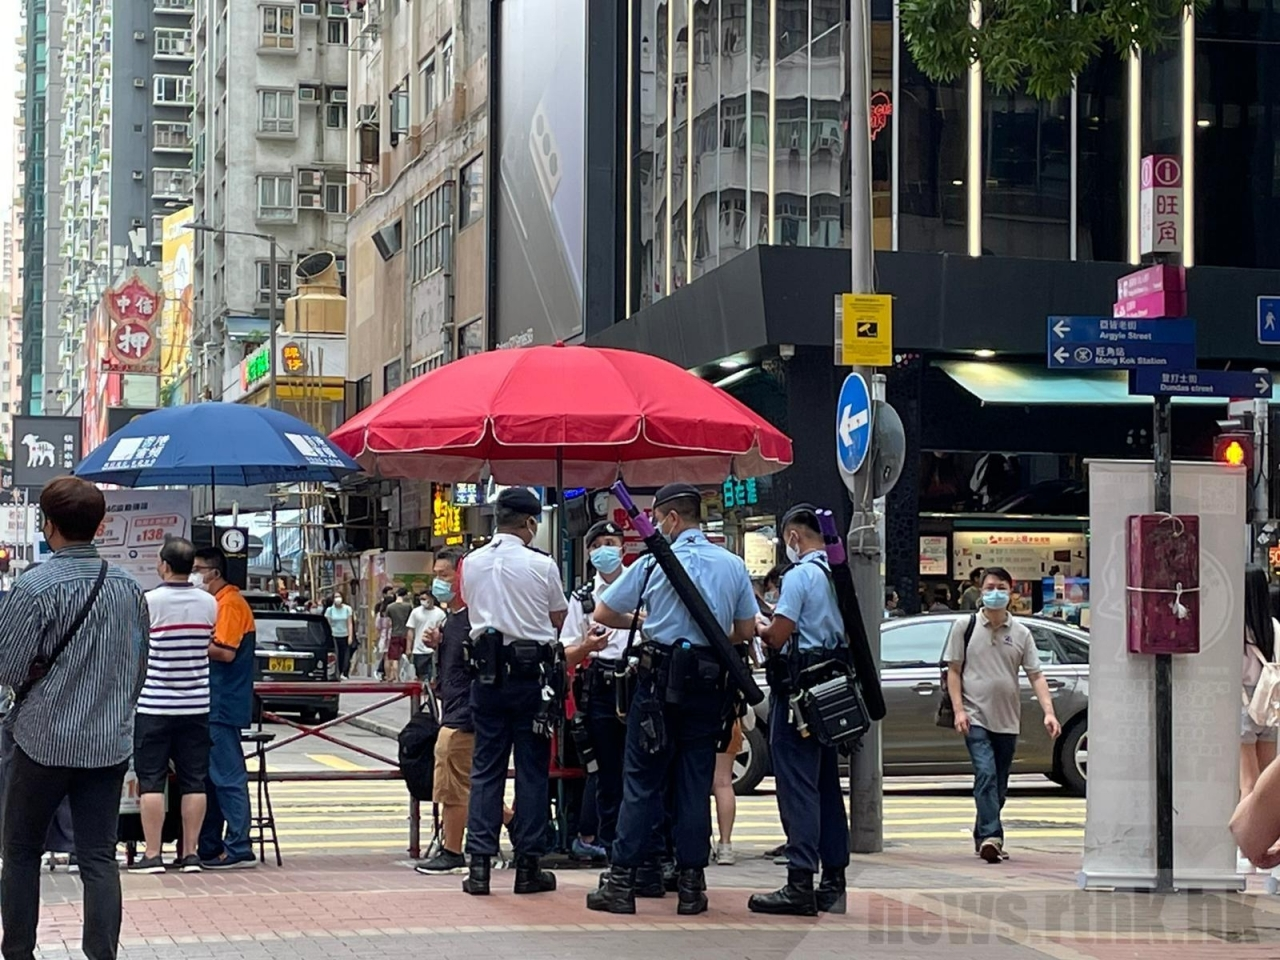 Police officers are seen patrolling the streets of Mong Kok. Photo: RTHK